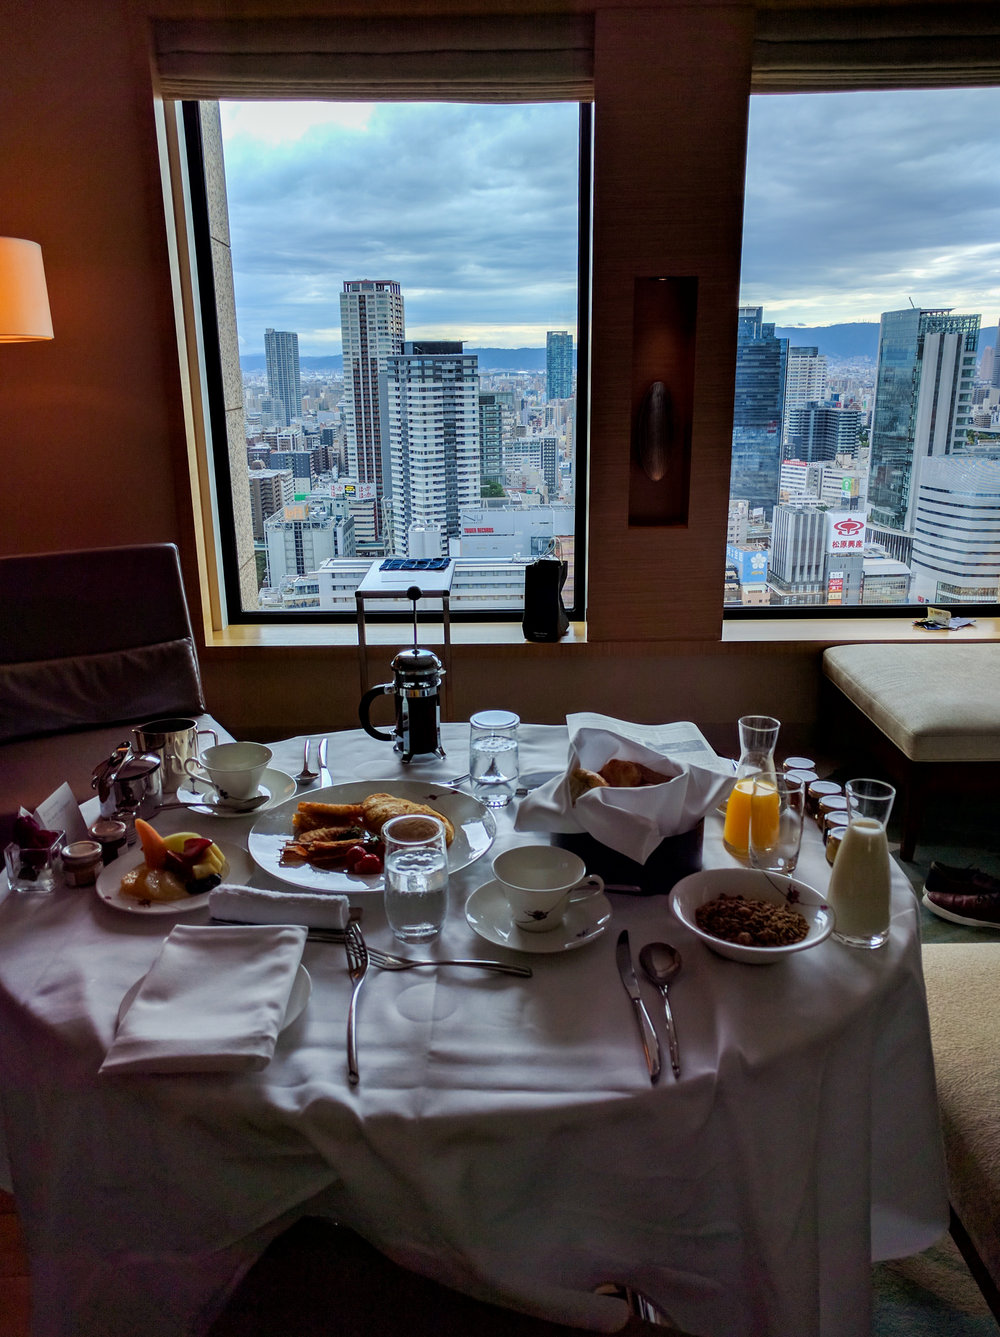 Room service at the InterContinental before heading to Umeda Sky Building